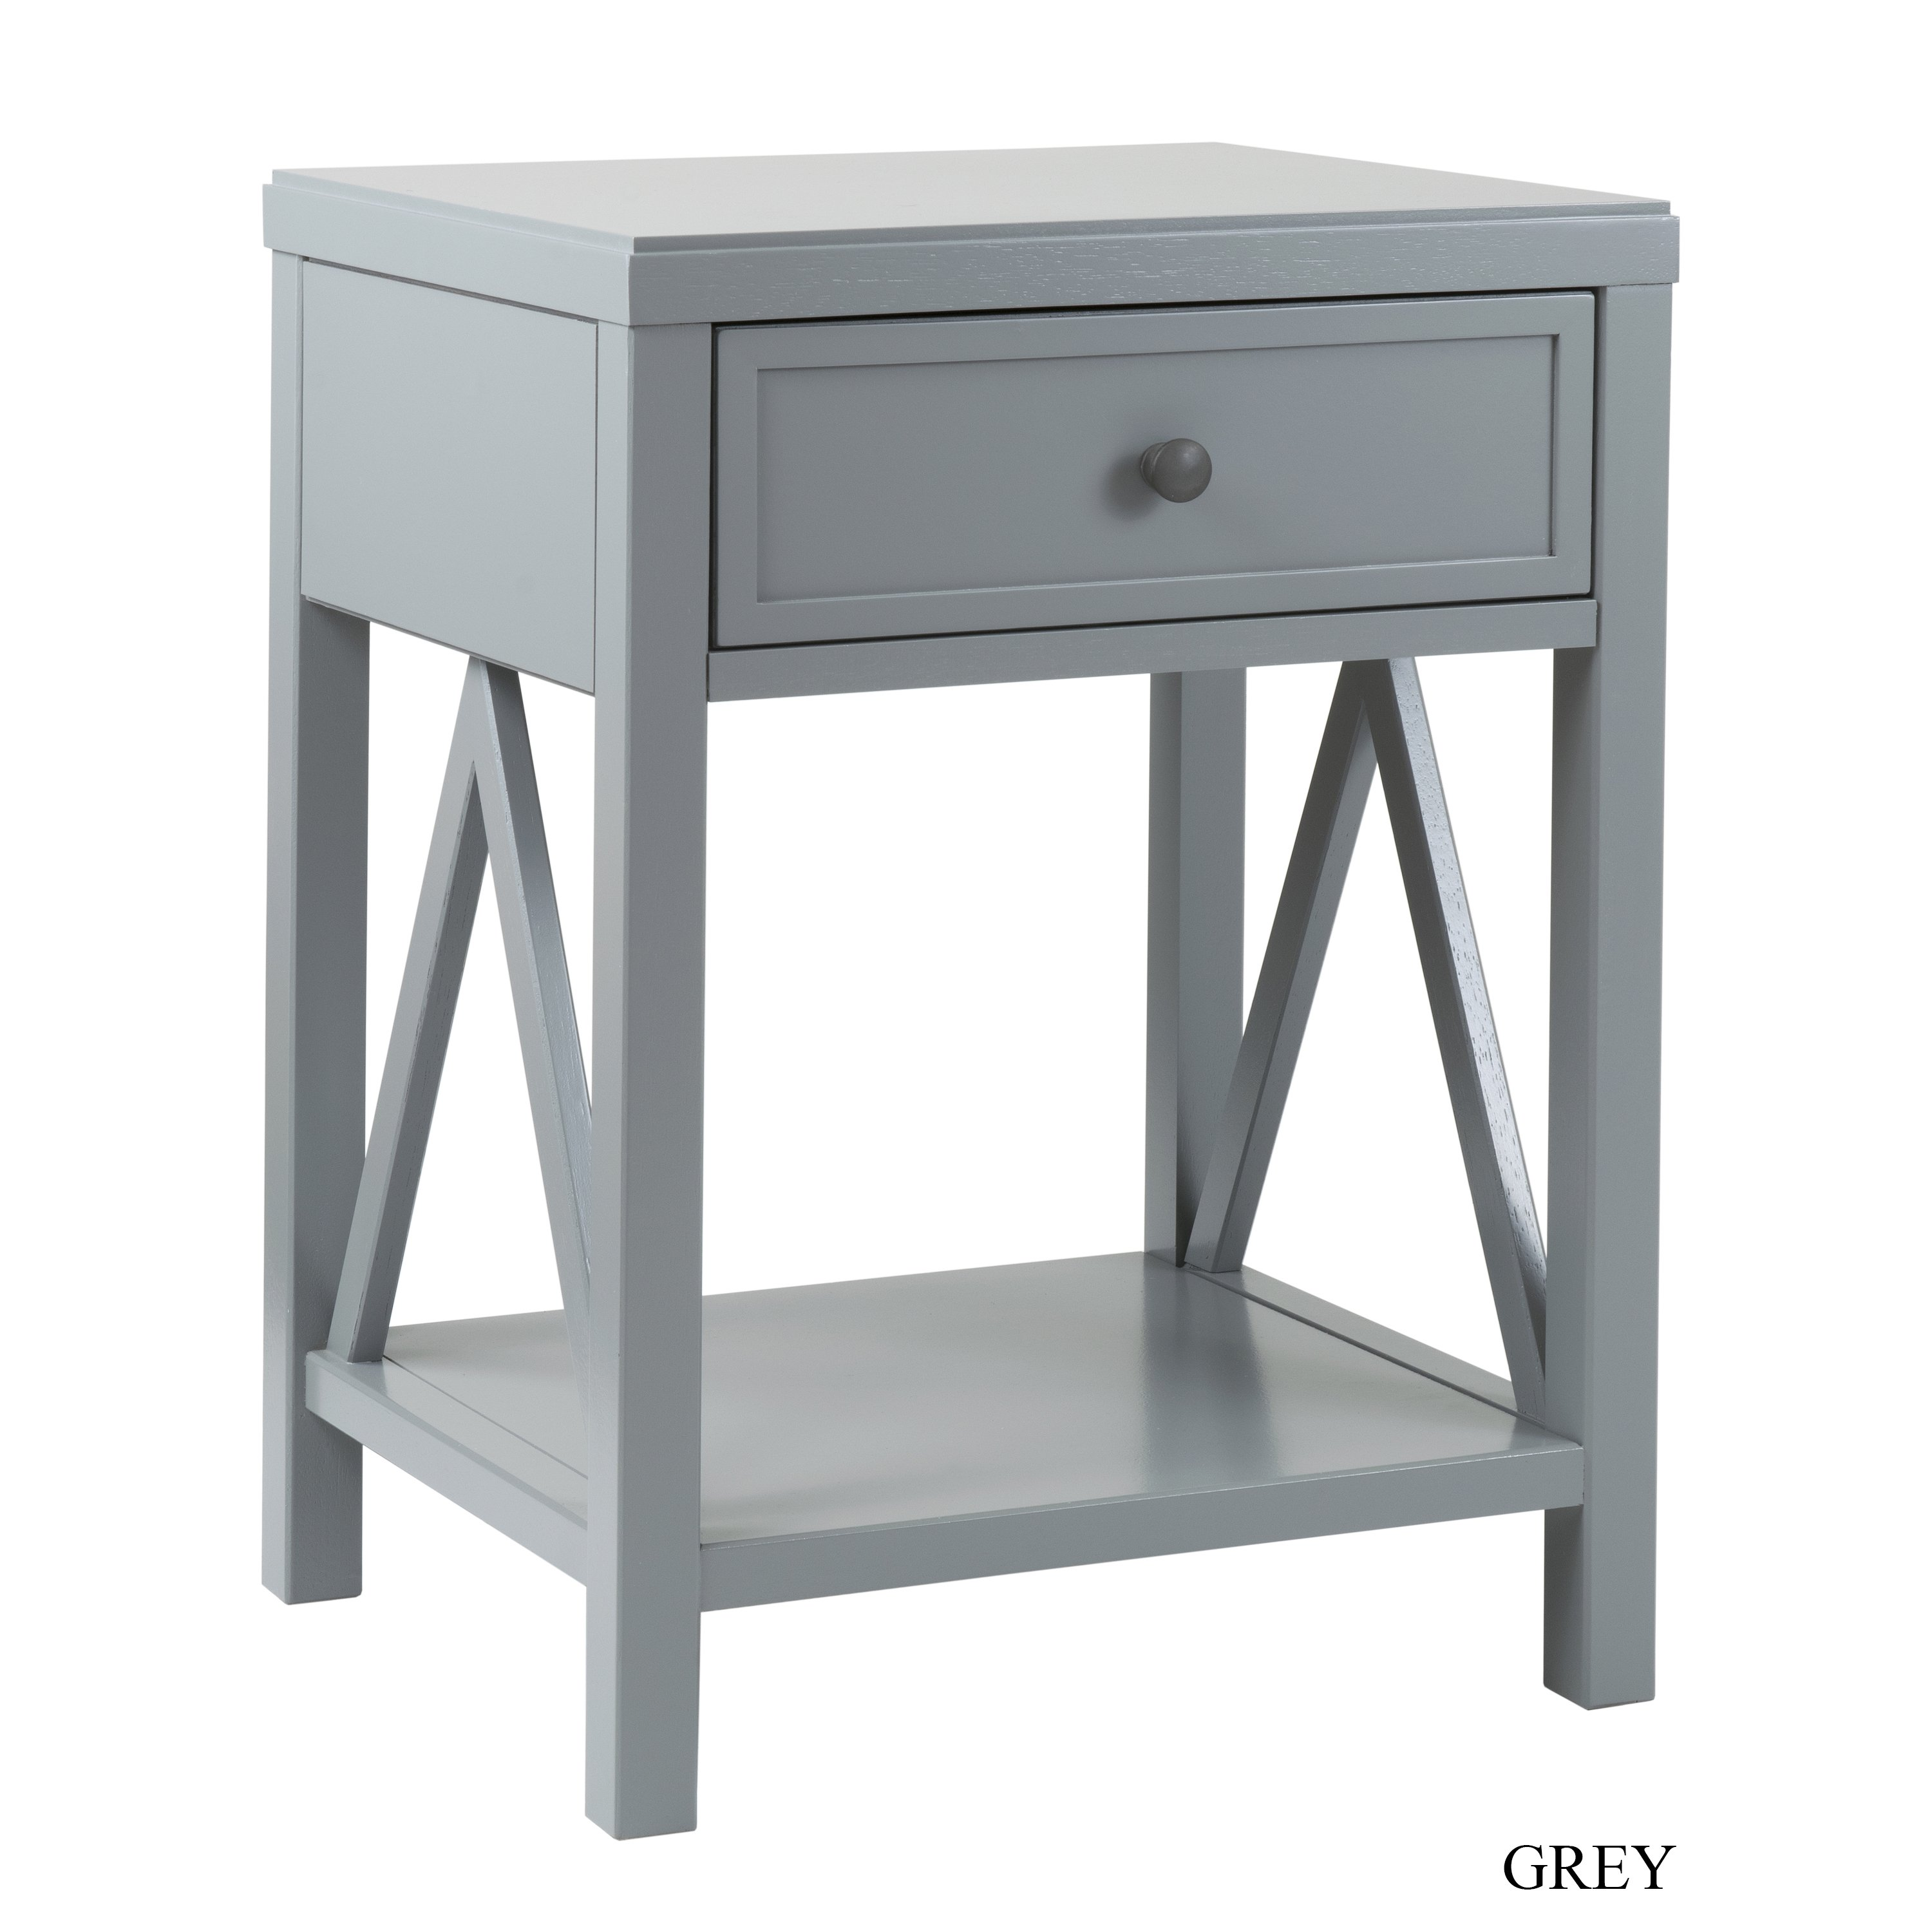 the gray barn latigo acacia wood end table east mains wilcox square accent mid century modern kitchen rectangular patio with umbrella hole tablecloth for round popular coffee